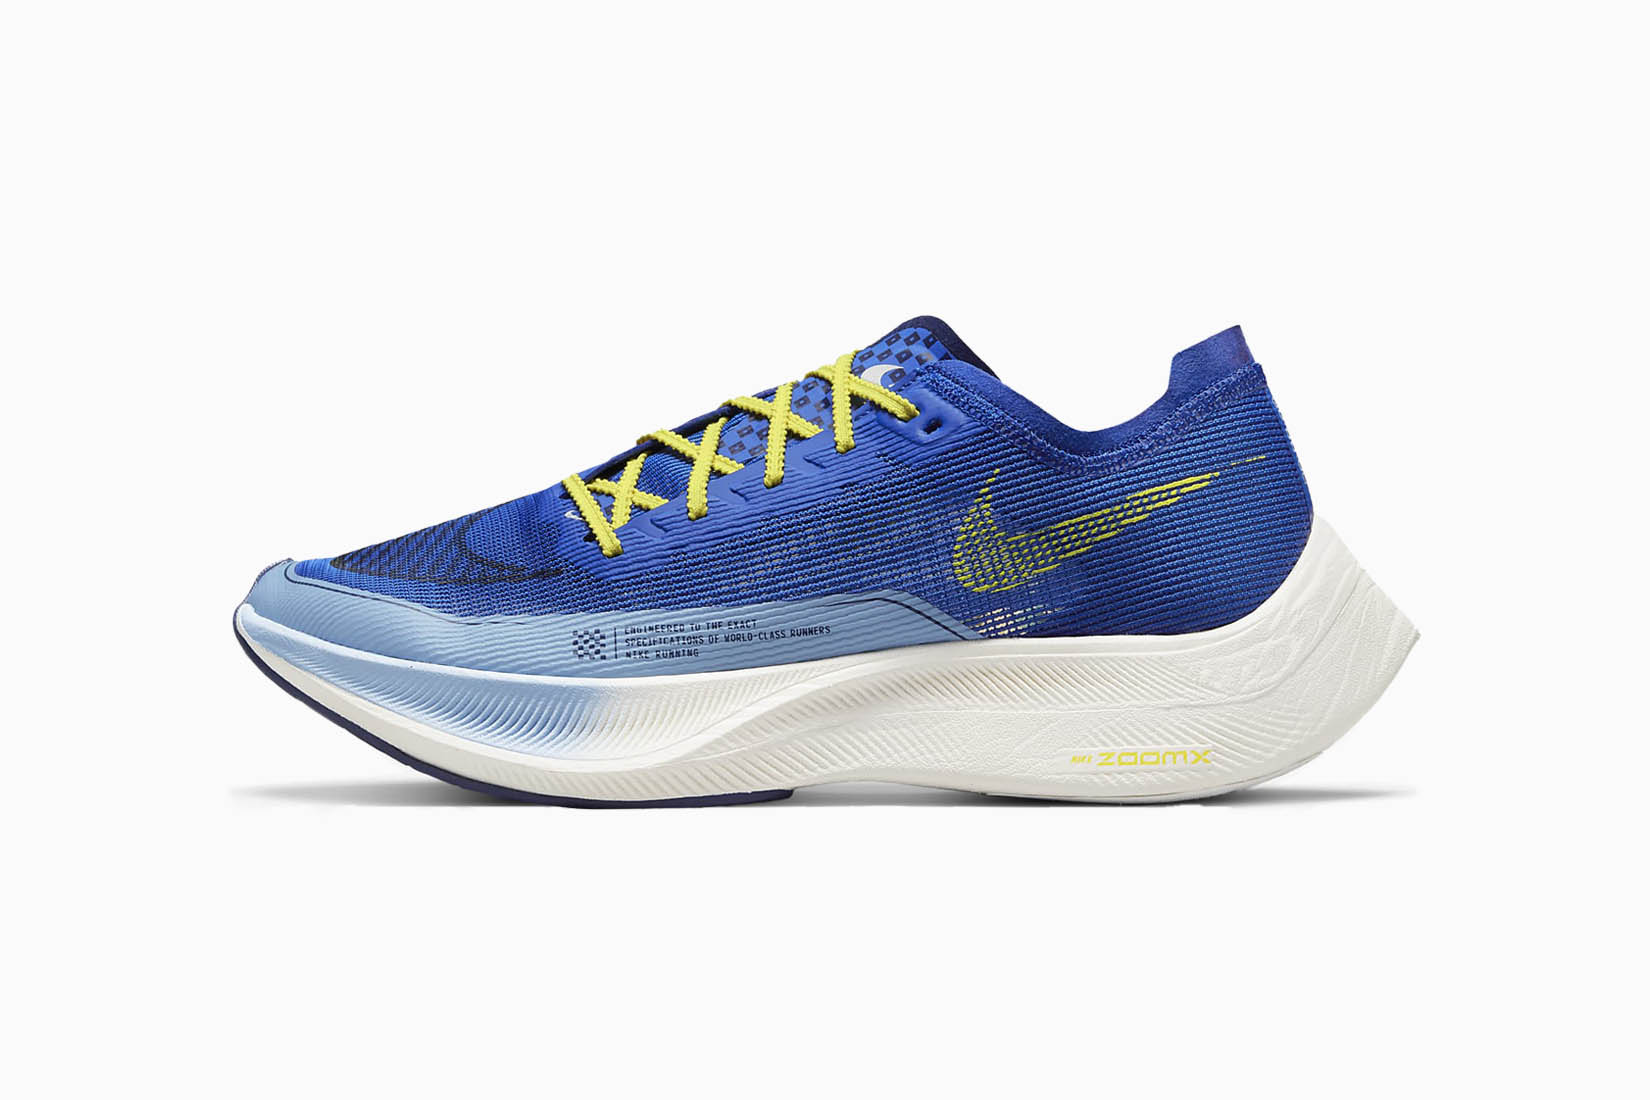 best nike running shoes men nike zoomx vaporfly next% 2 review Luxe Digital